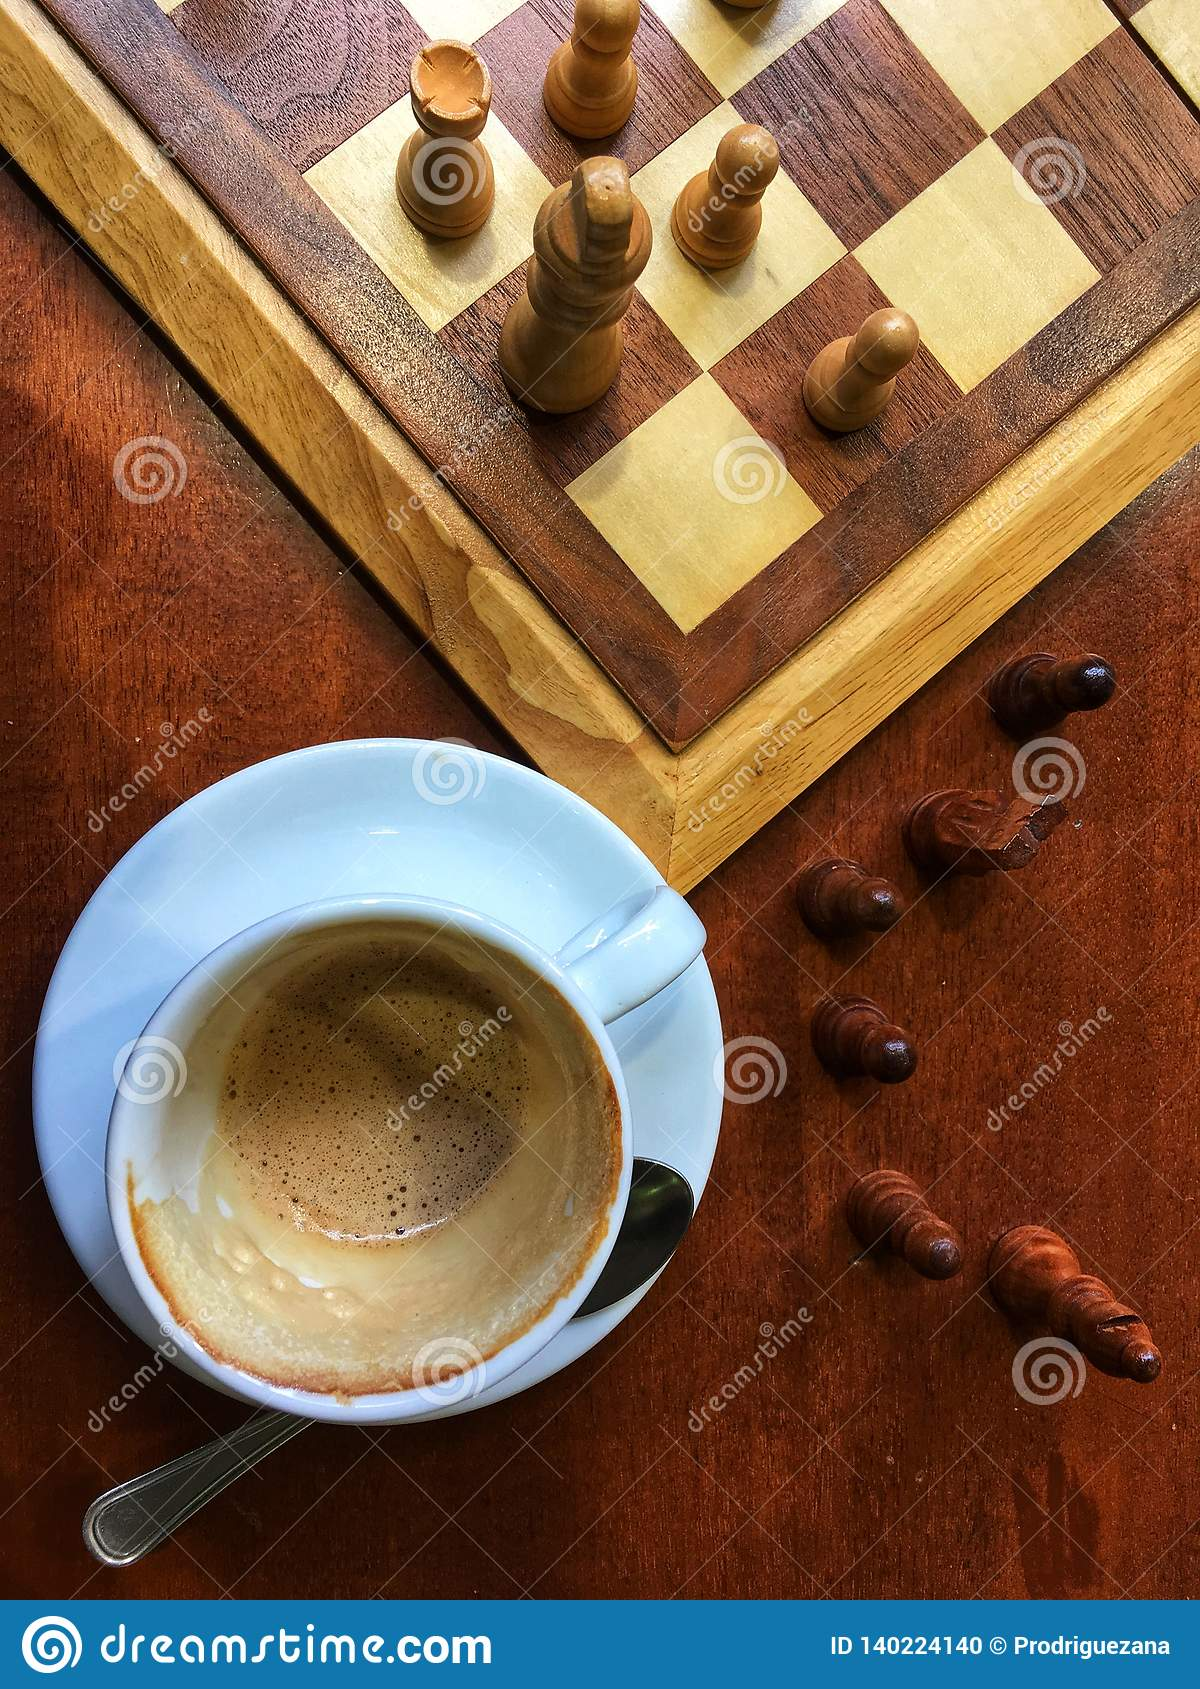 Morning Italian Coffee and chess playing